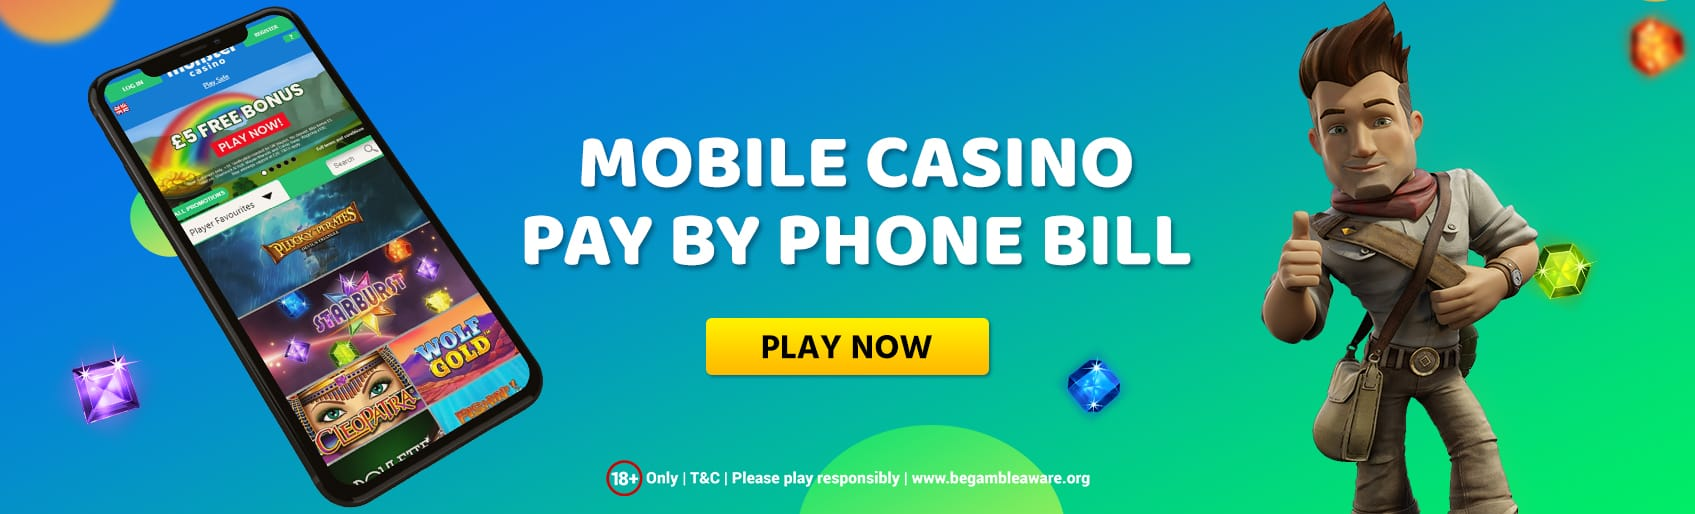 Pay by Mobile Casino Image